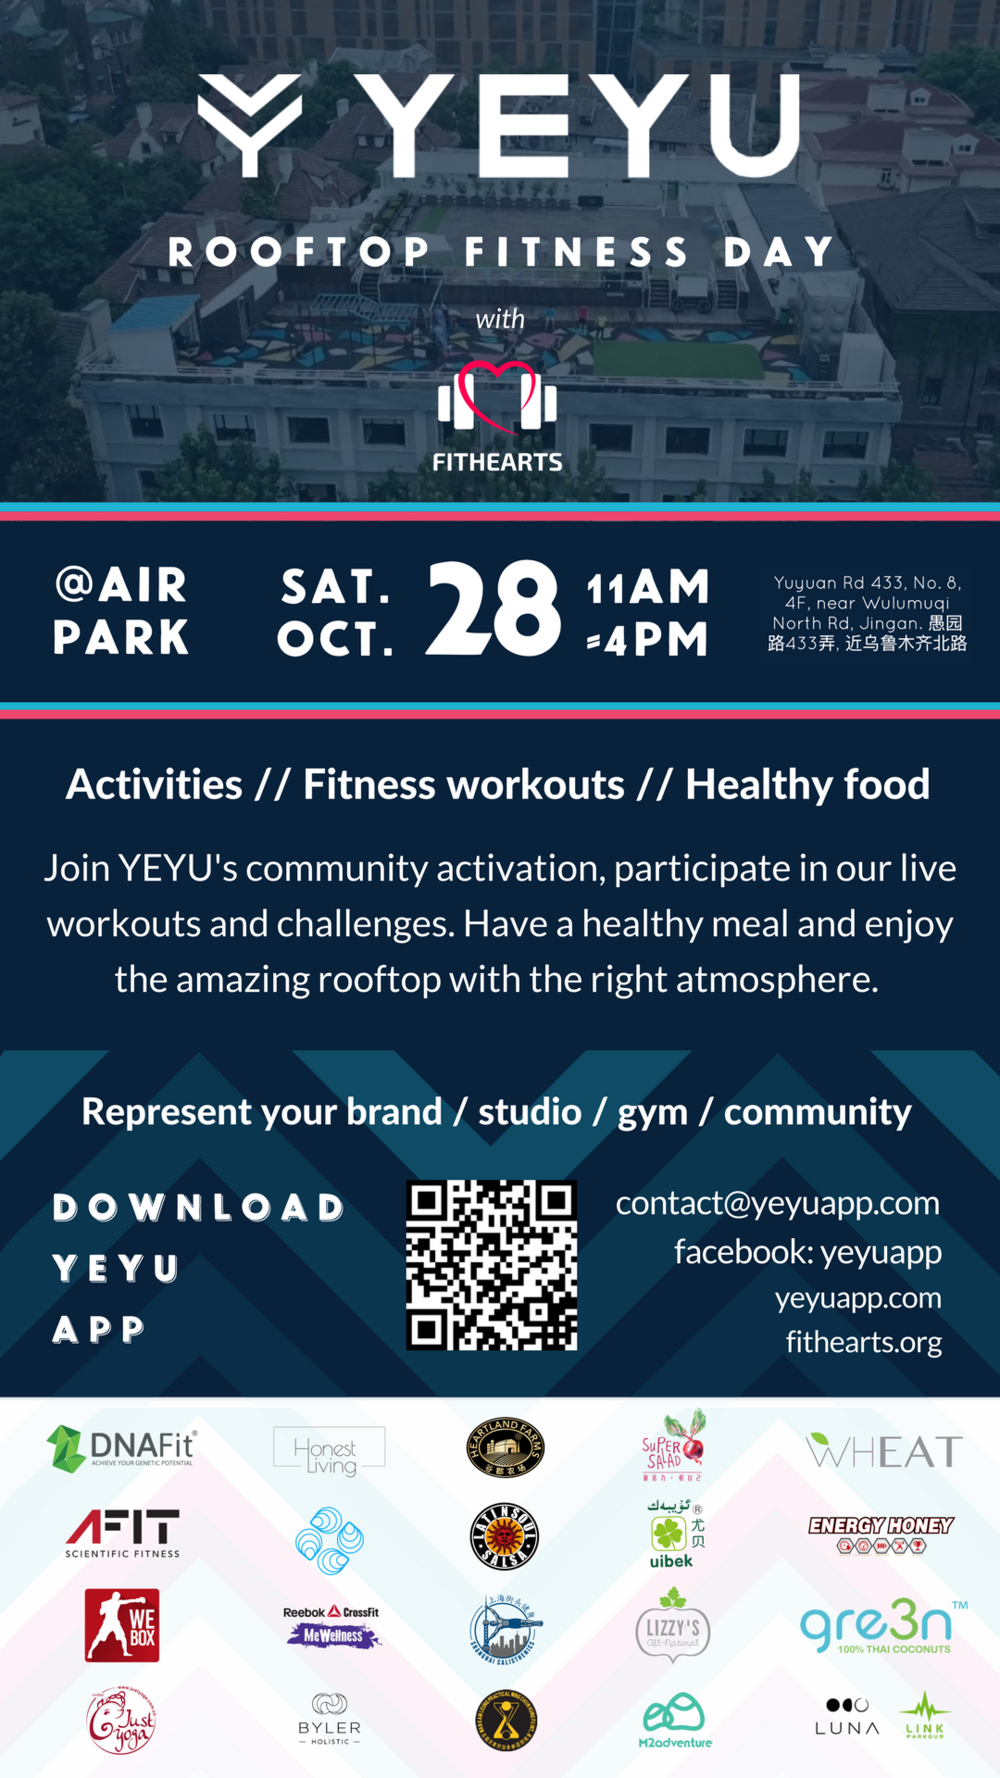 YEYU rooftop fitness day.png